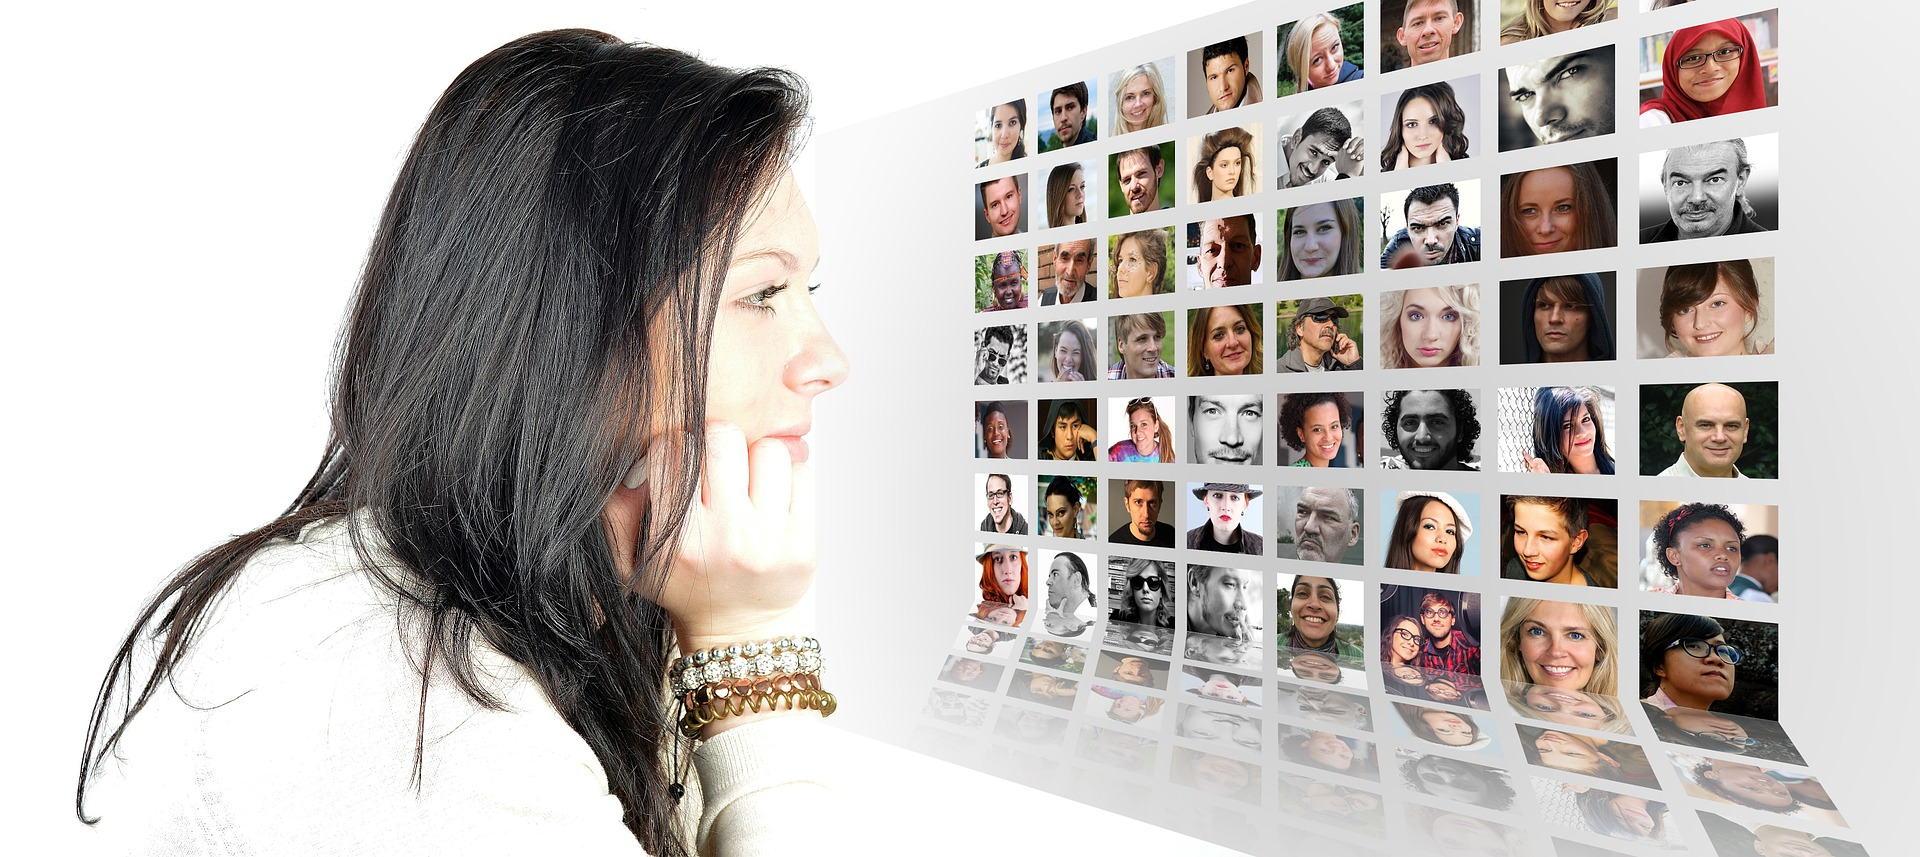 Social Bookmarking Sites List and How to Use The Best One